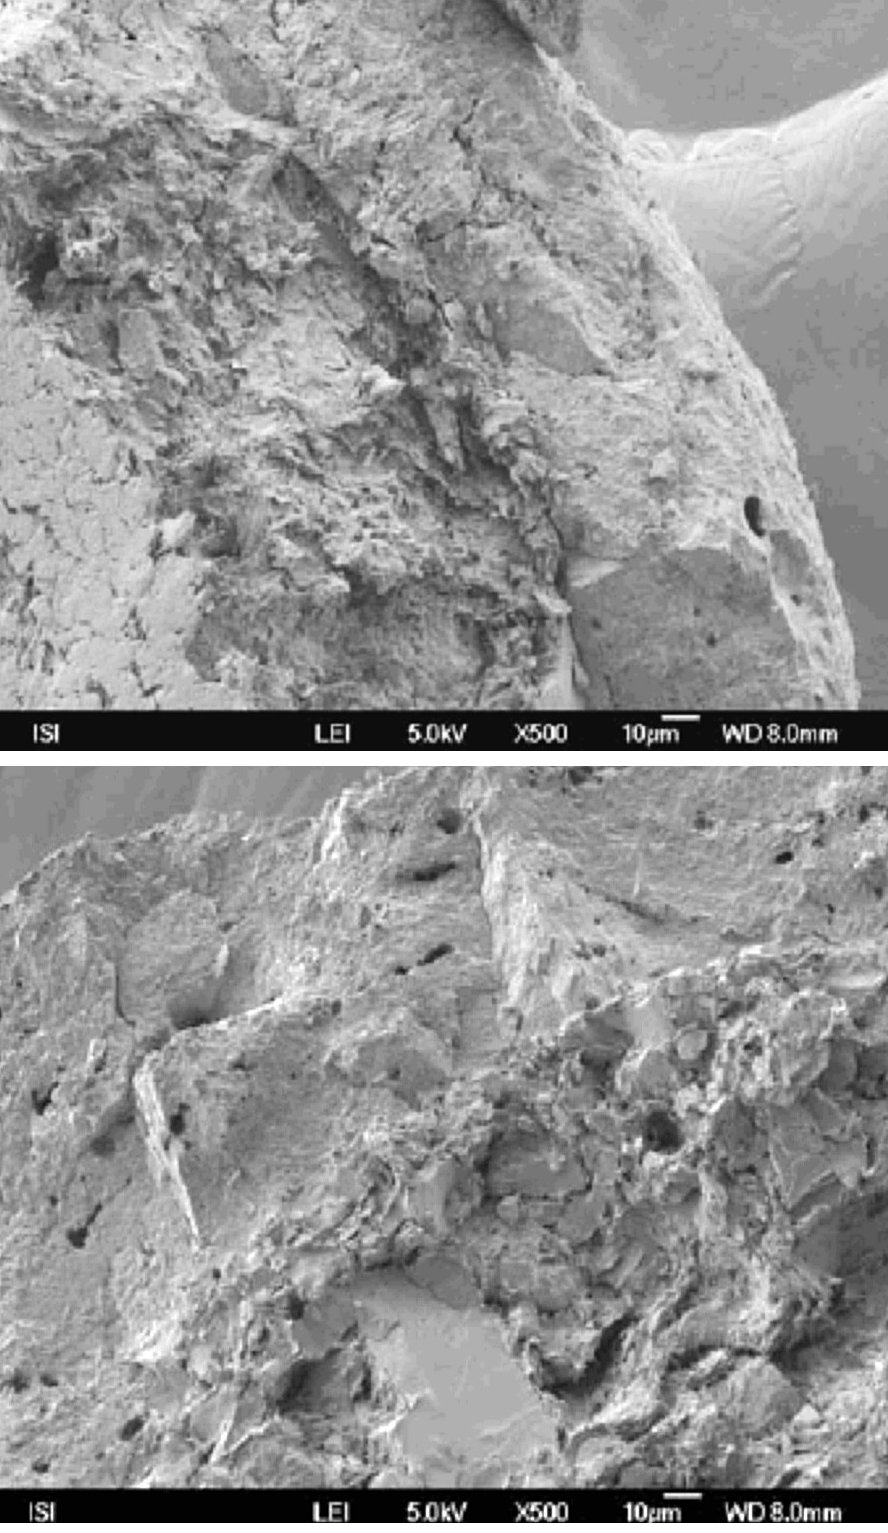 Fig. 3. The cross-section of the layered pellet (left) containing the MCC and LM/ MCC (right) as observed under the scanning electron microscope (magnification 500×)